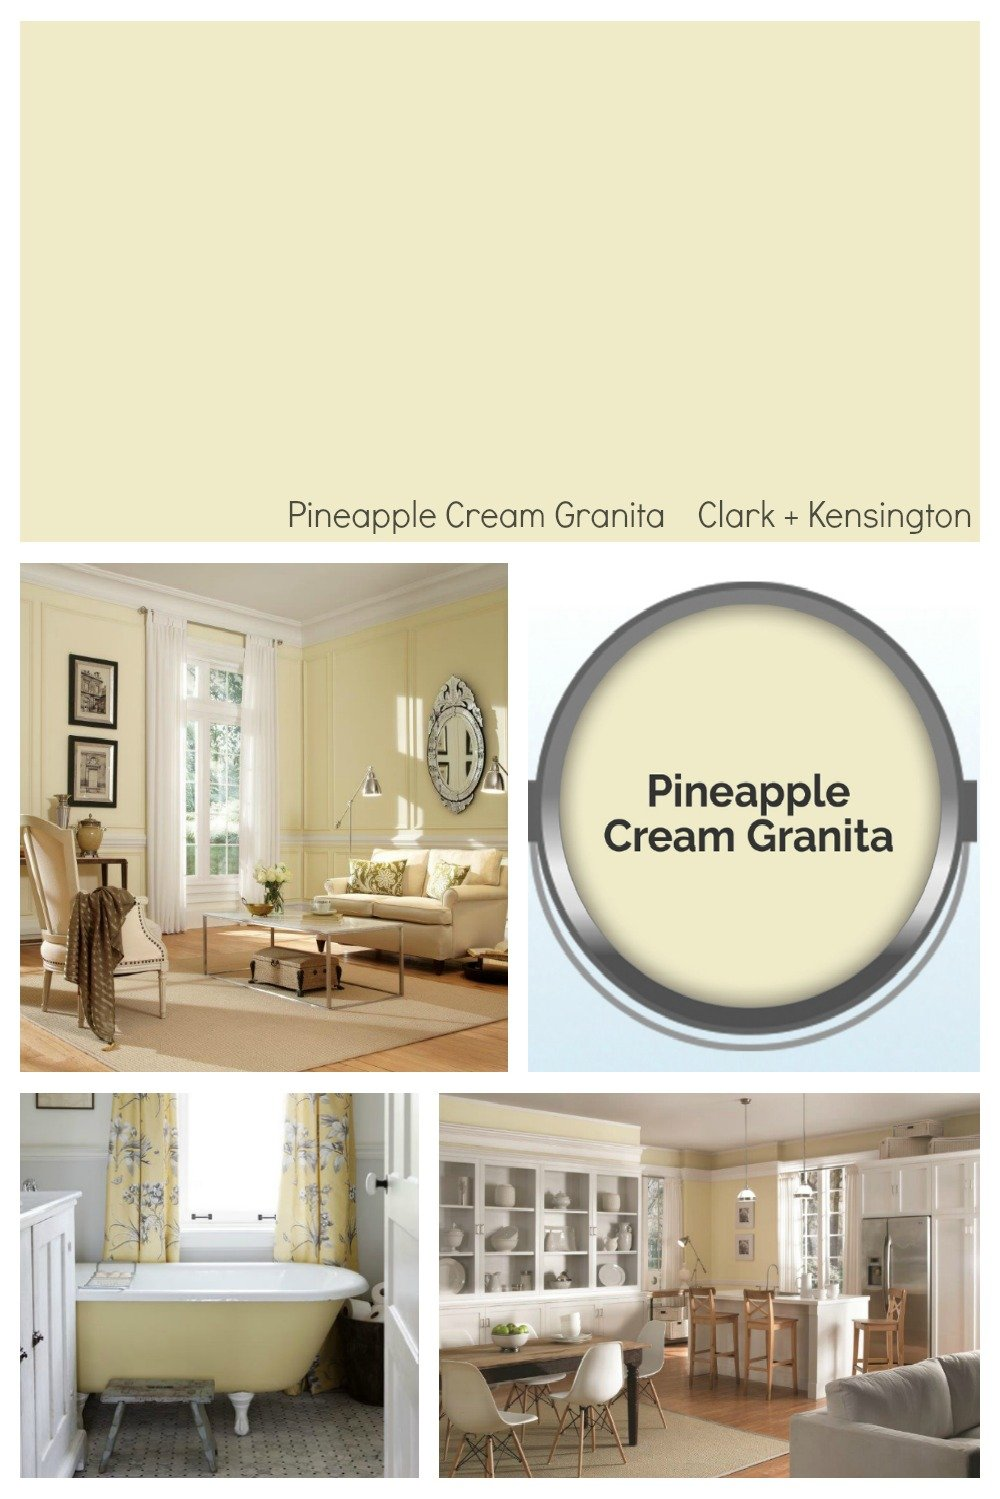 Ace Hardware 2019 Color of the Year. Pineapple Cream Granita